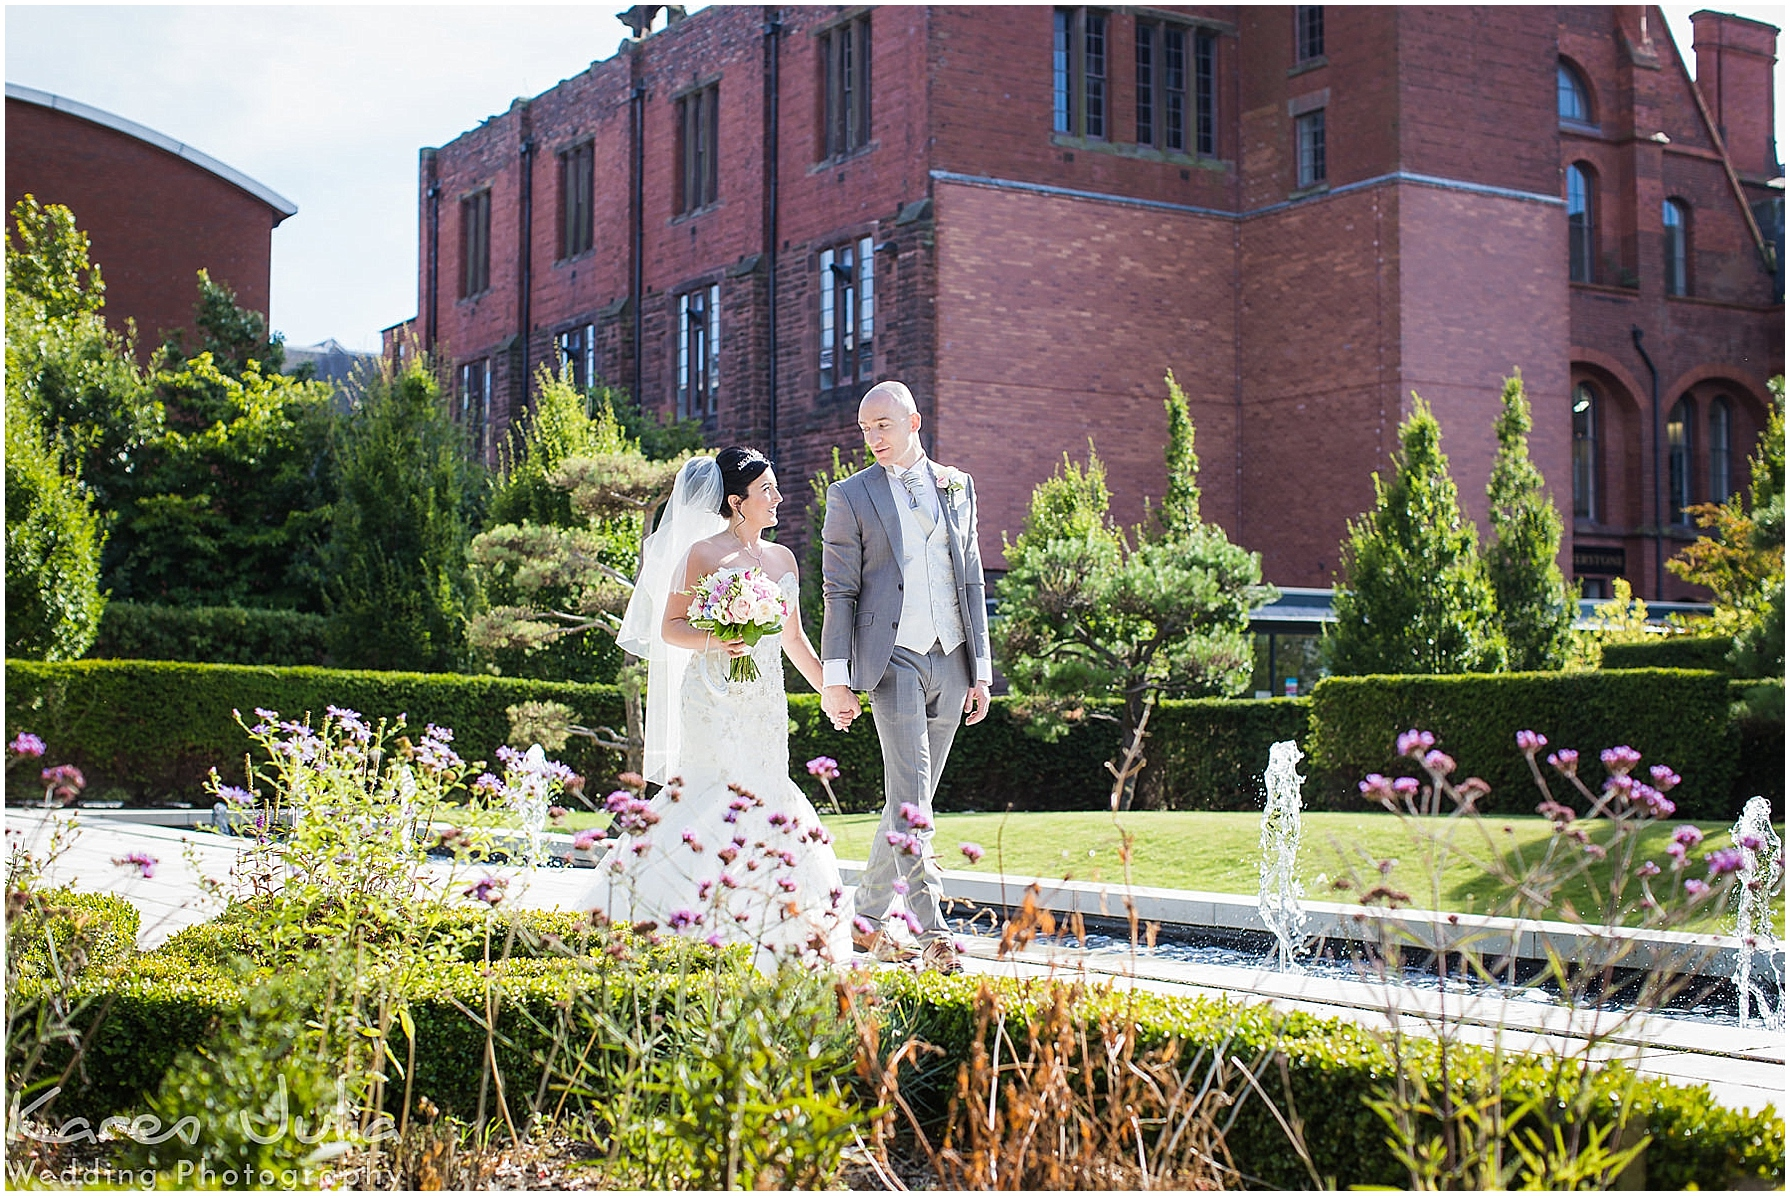 Devonshire Hotel Wedding Photography with bride and groom portraits at Angel Fields Gardens